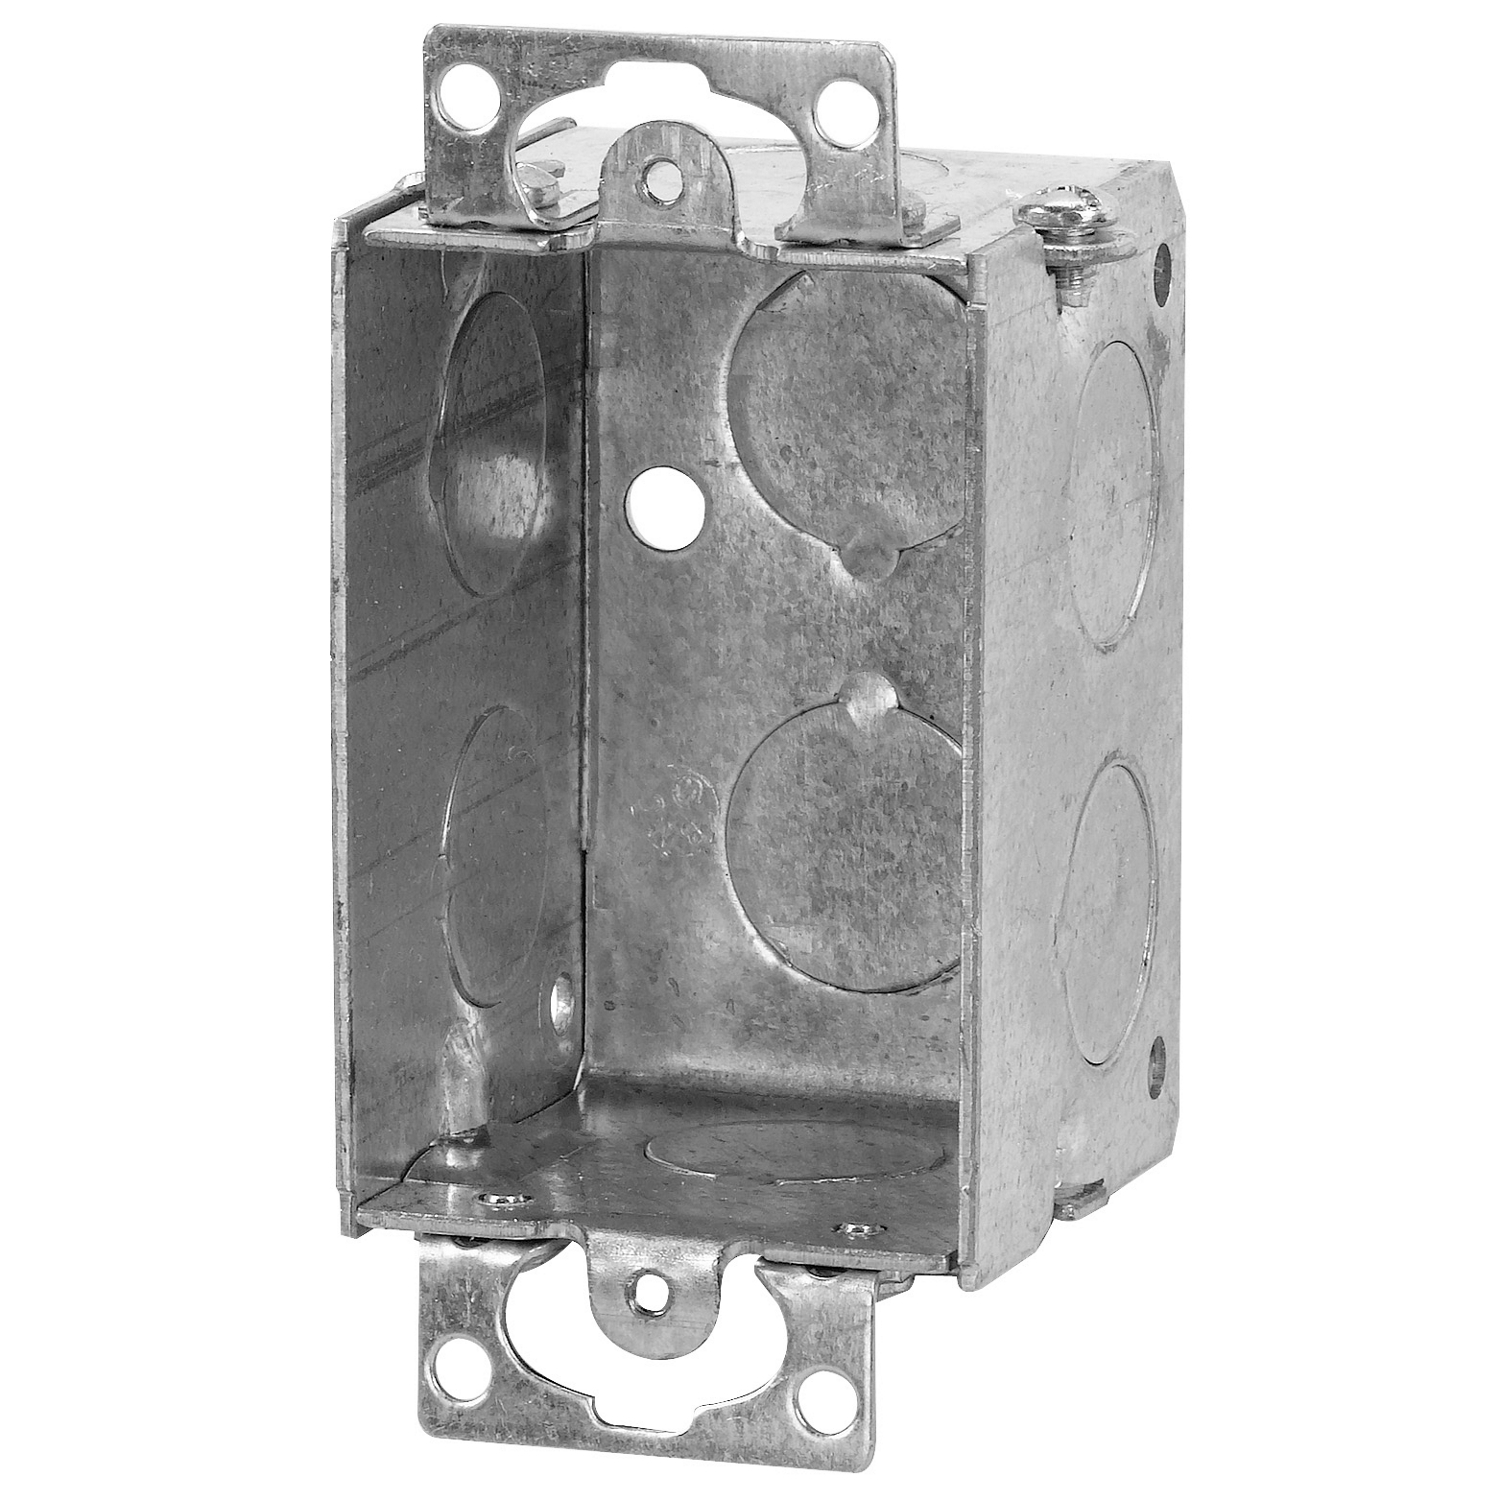 Steel City® Switch Box, Gangable, 1 Outlet, 1 Gang, 8 Knockouts, 1/2 in Knockout, Knockout Cable Entry, 10 cu-in Capacity, Steel, Electro-Galvanized, Silver, 2 in H x 2 in W x 1/2 in D Dimensions